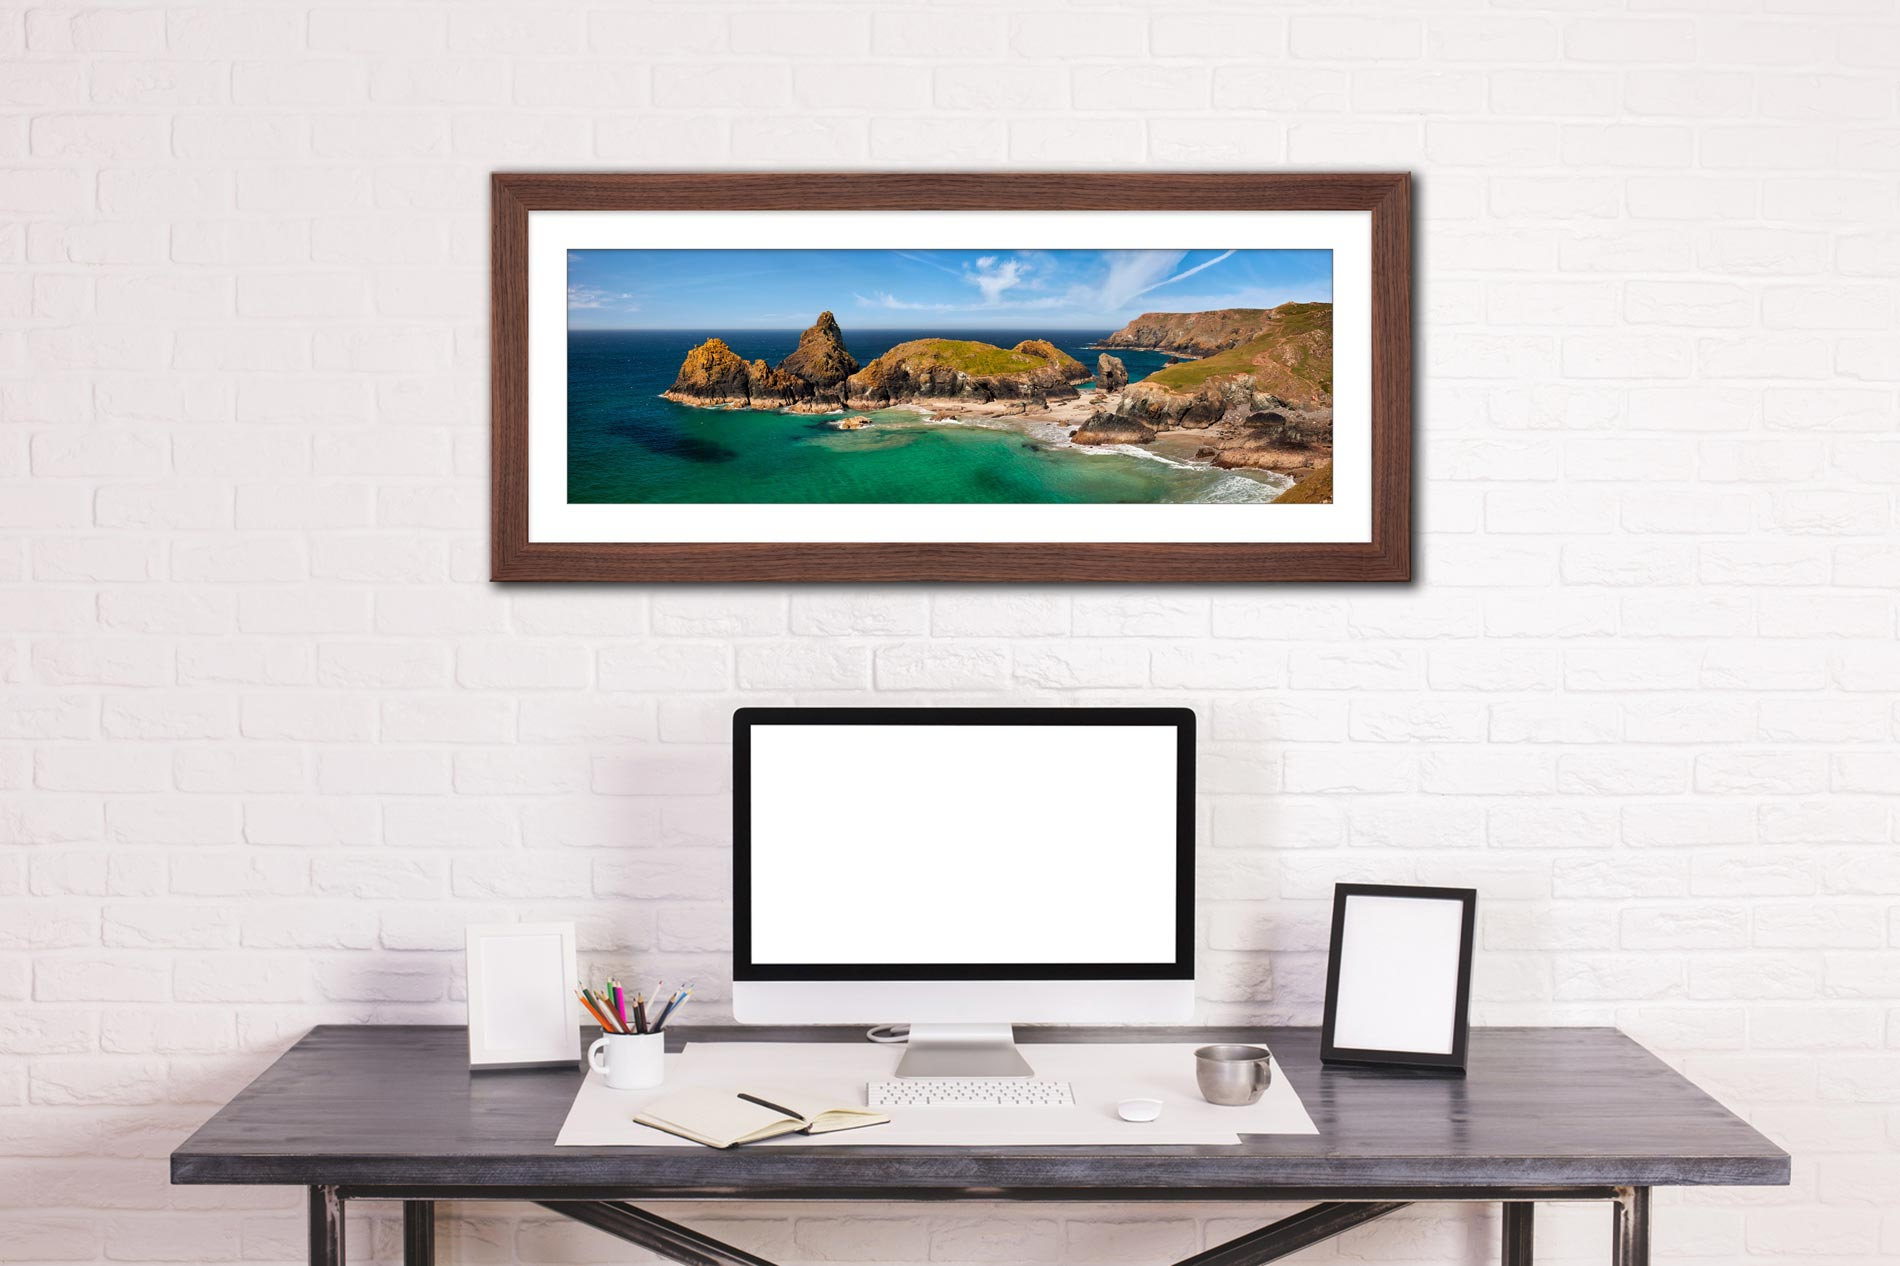 Asparagus Island at Kynance Cove - Framed Print with Mount on Wall